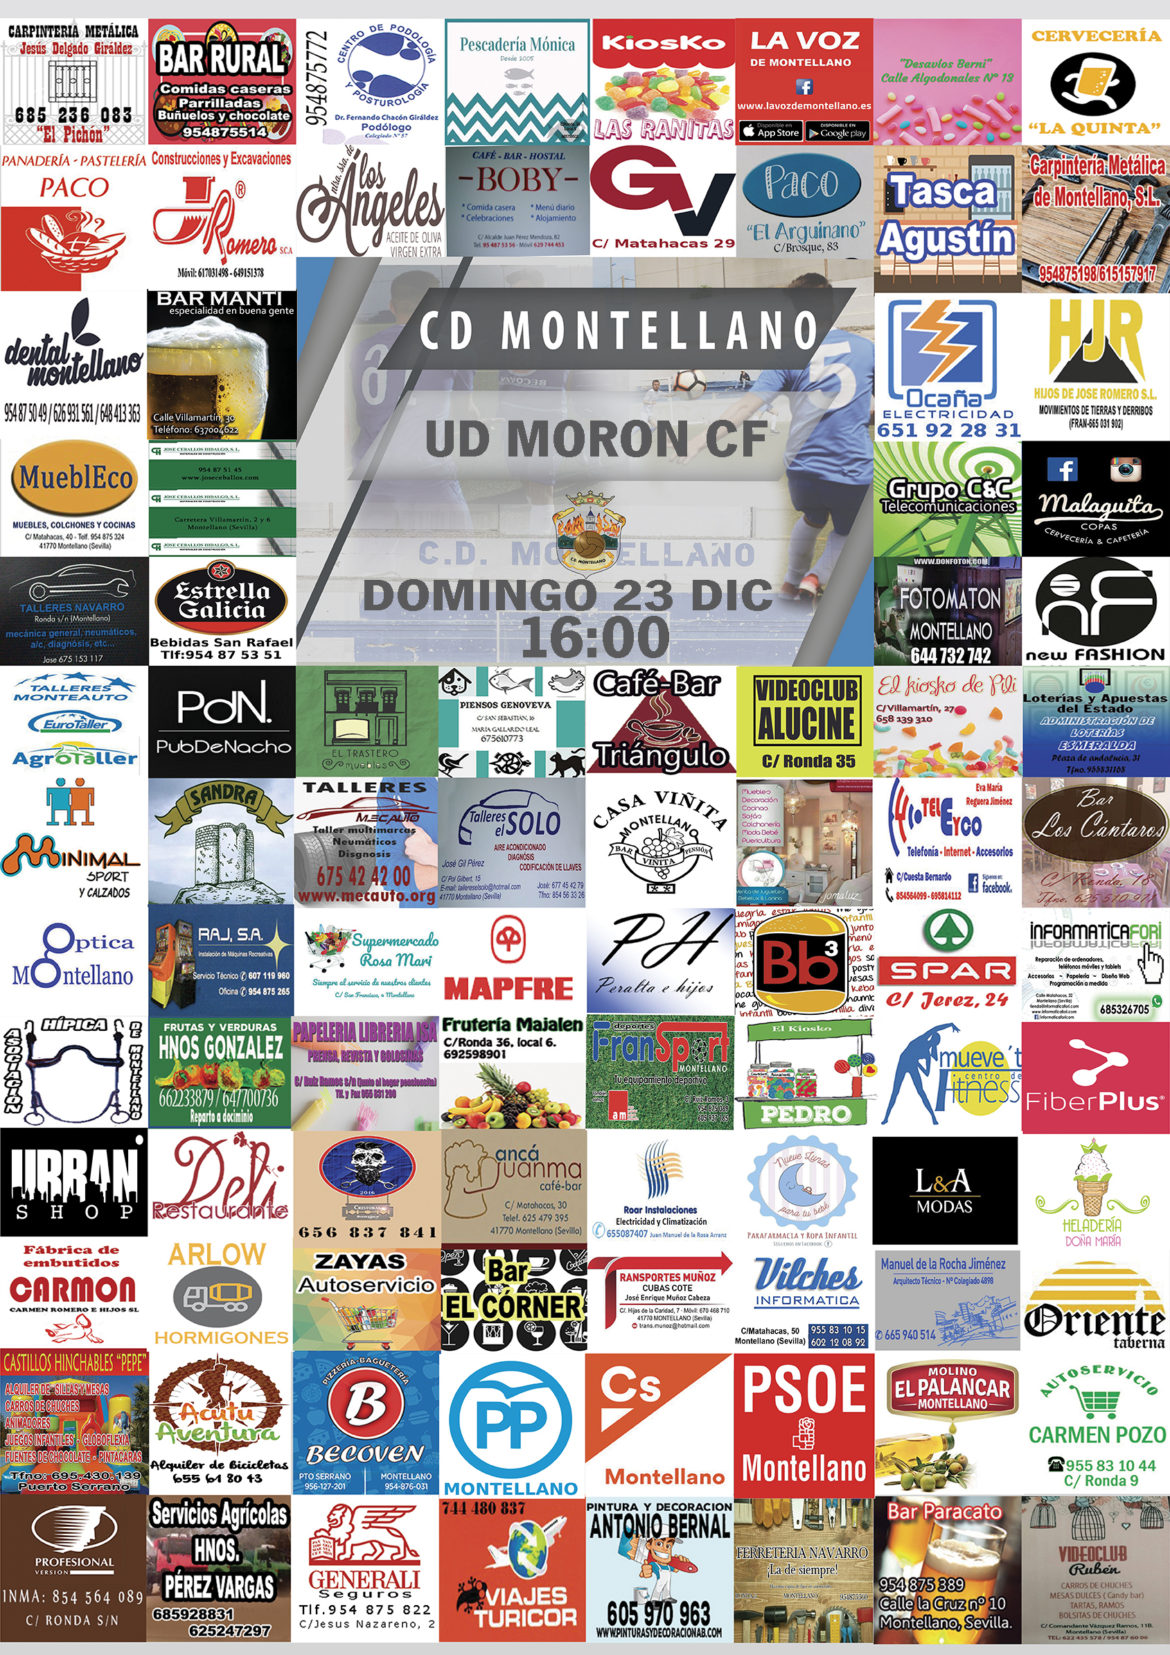 cd montellano vs us moron